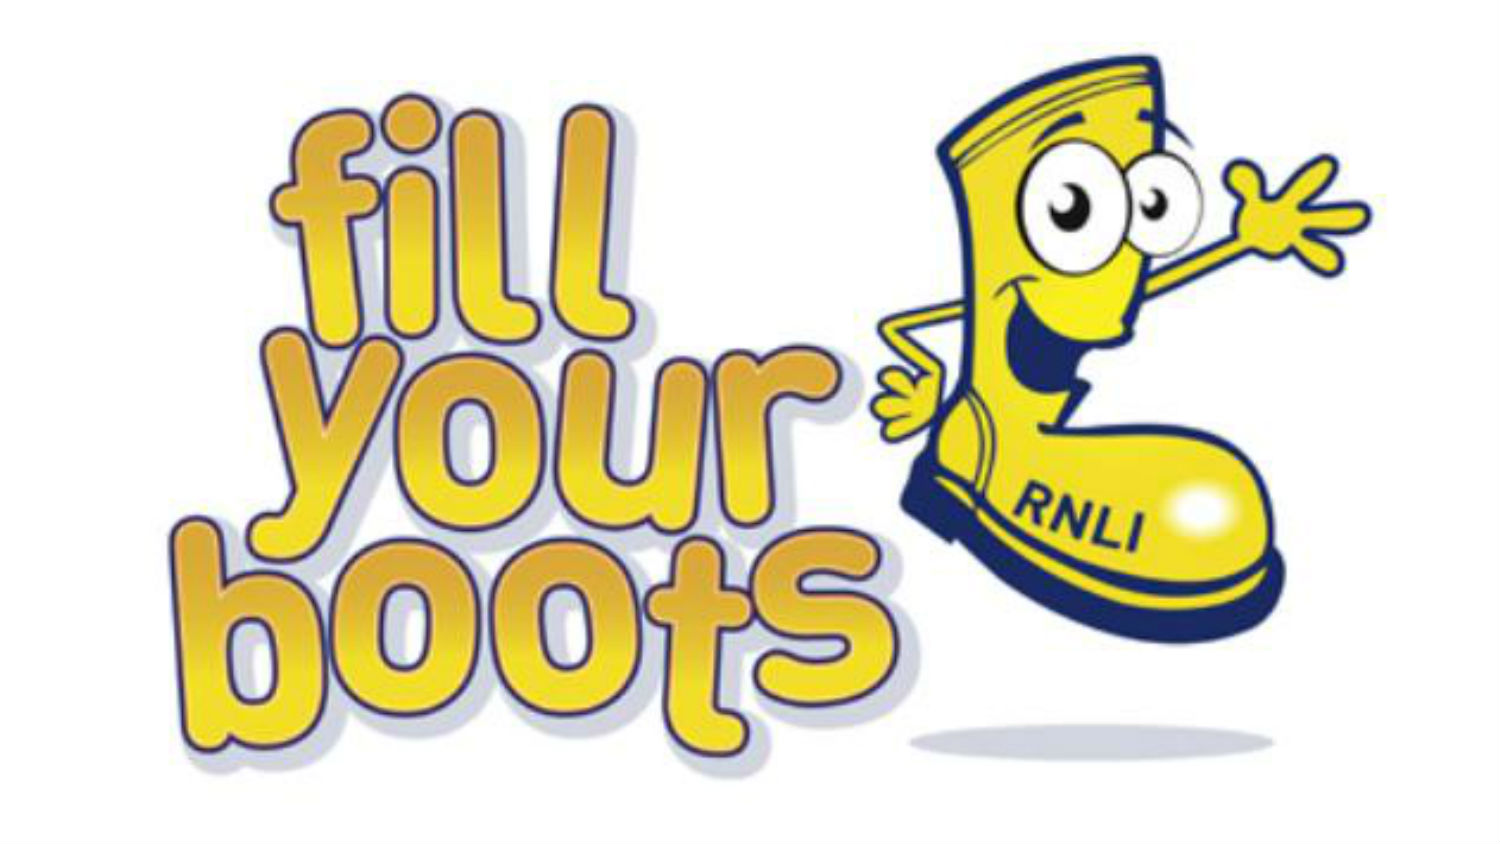 Fill your boots logo